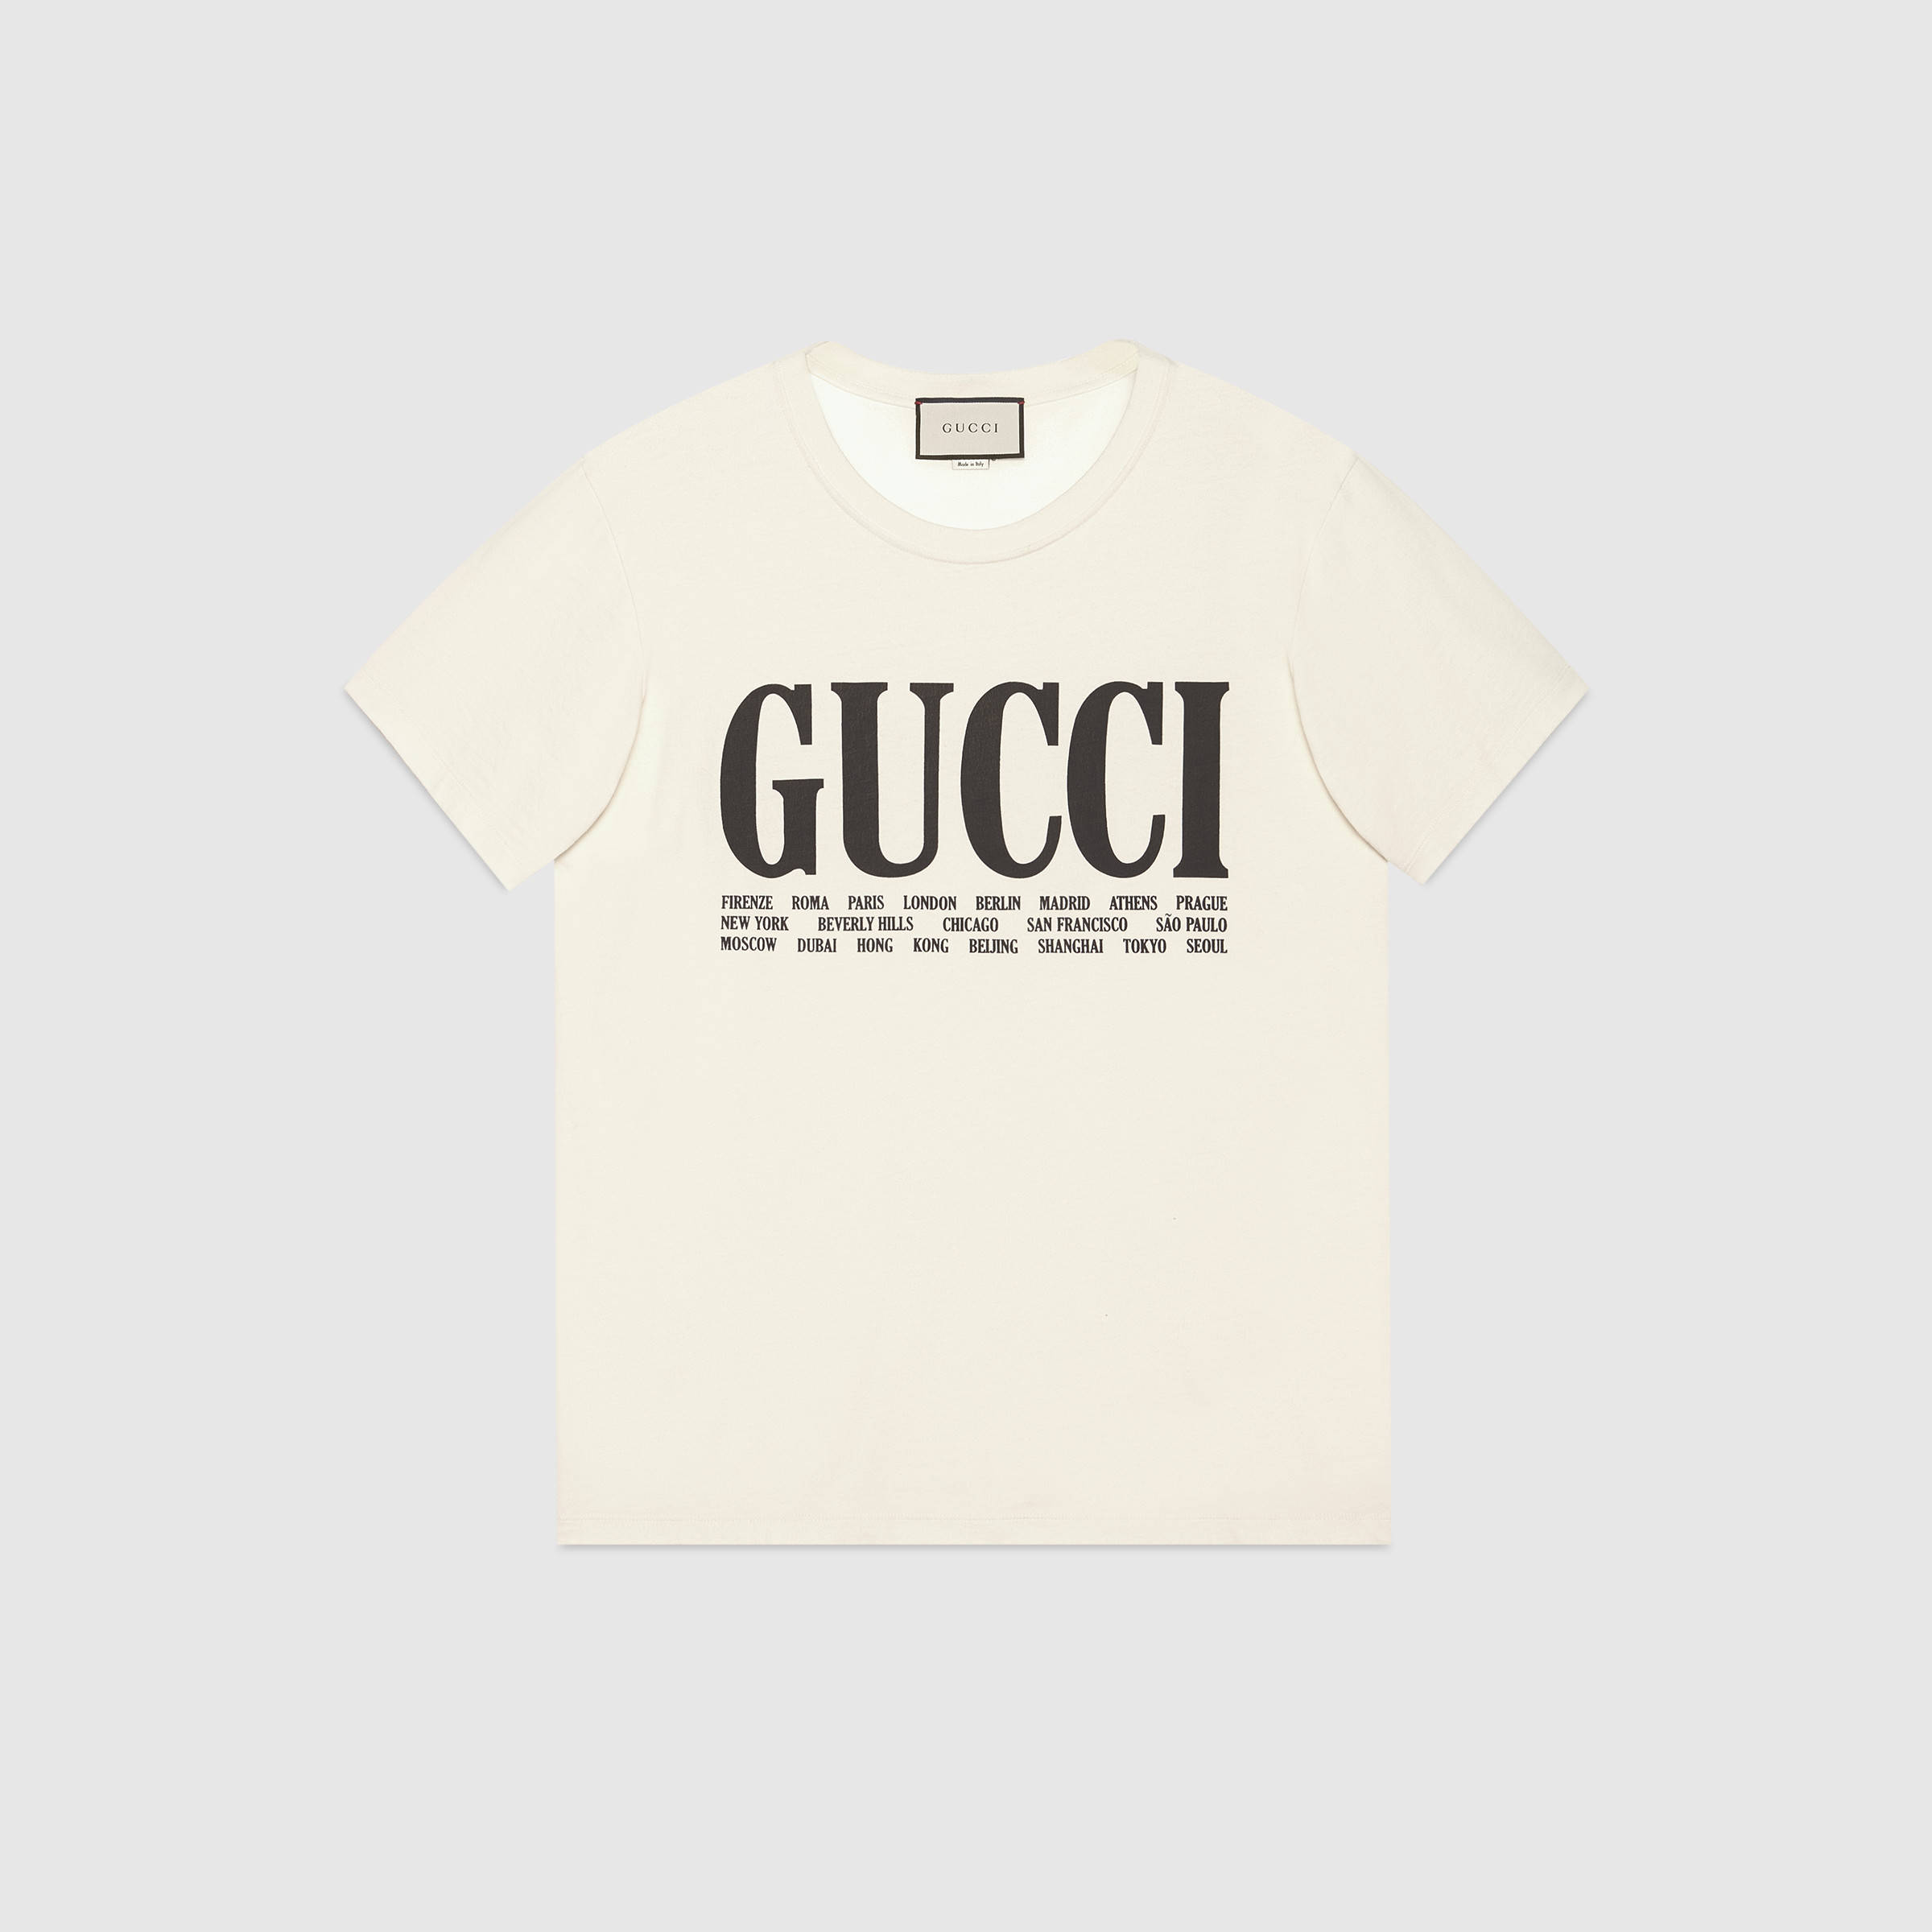 Gucci Launches New Spring/Summer 2018 Tees